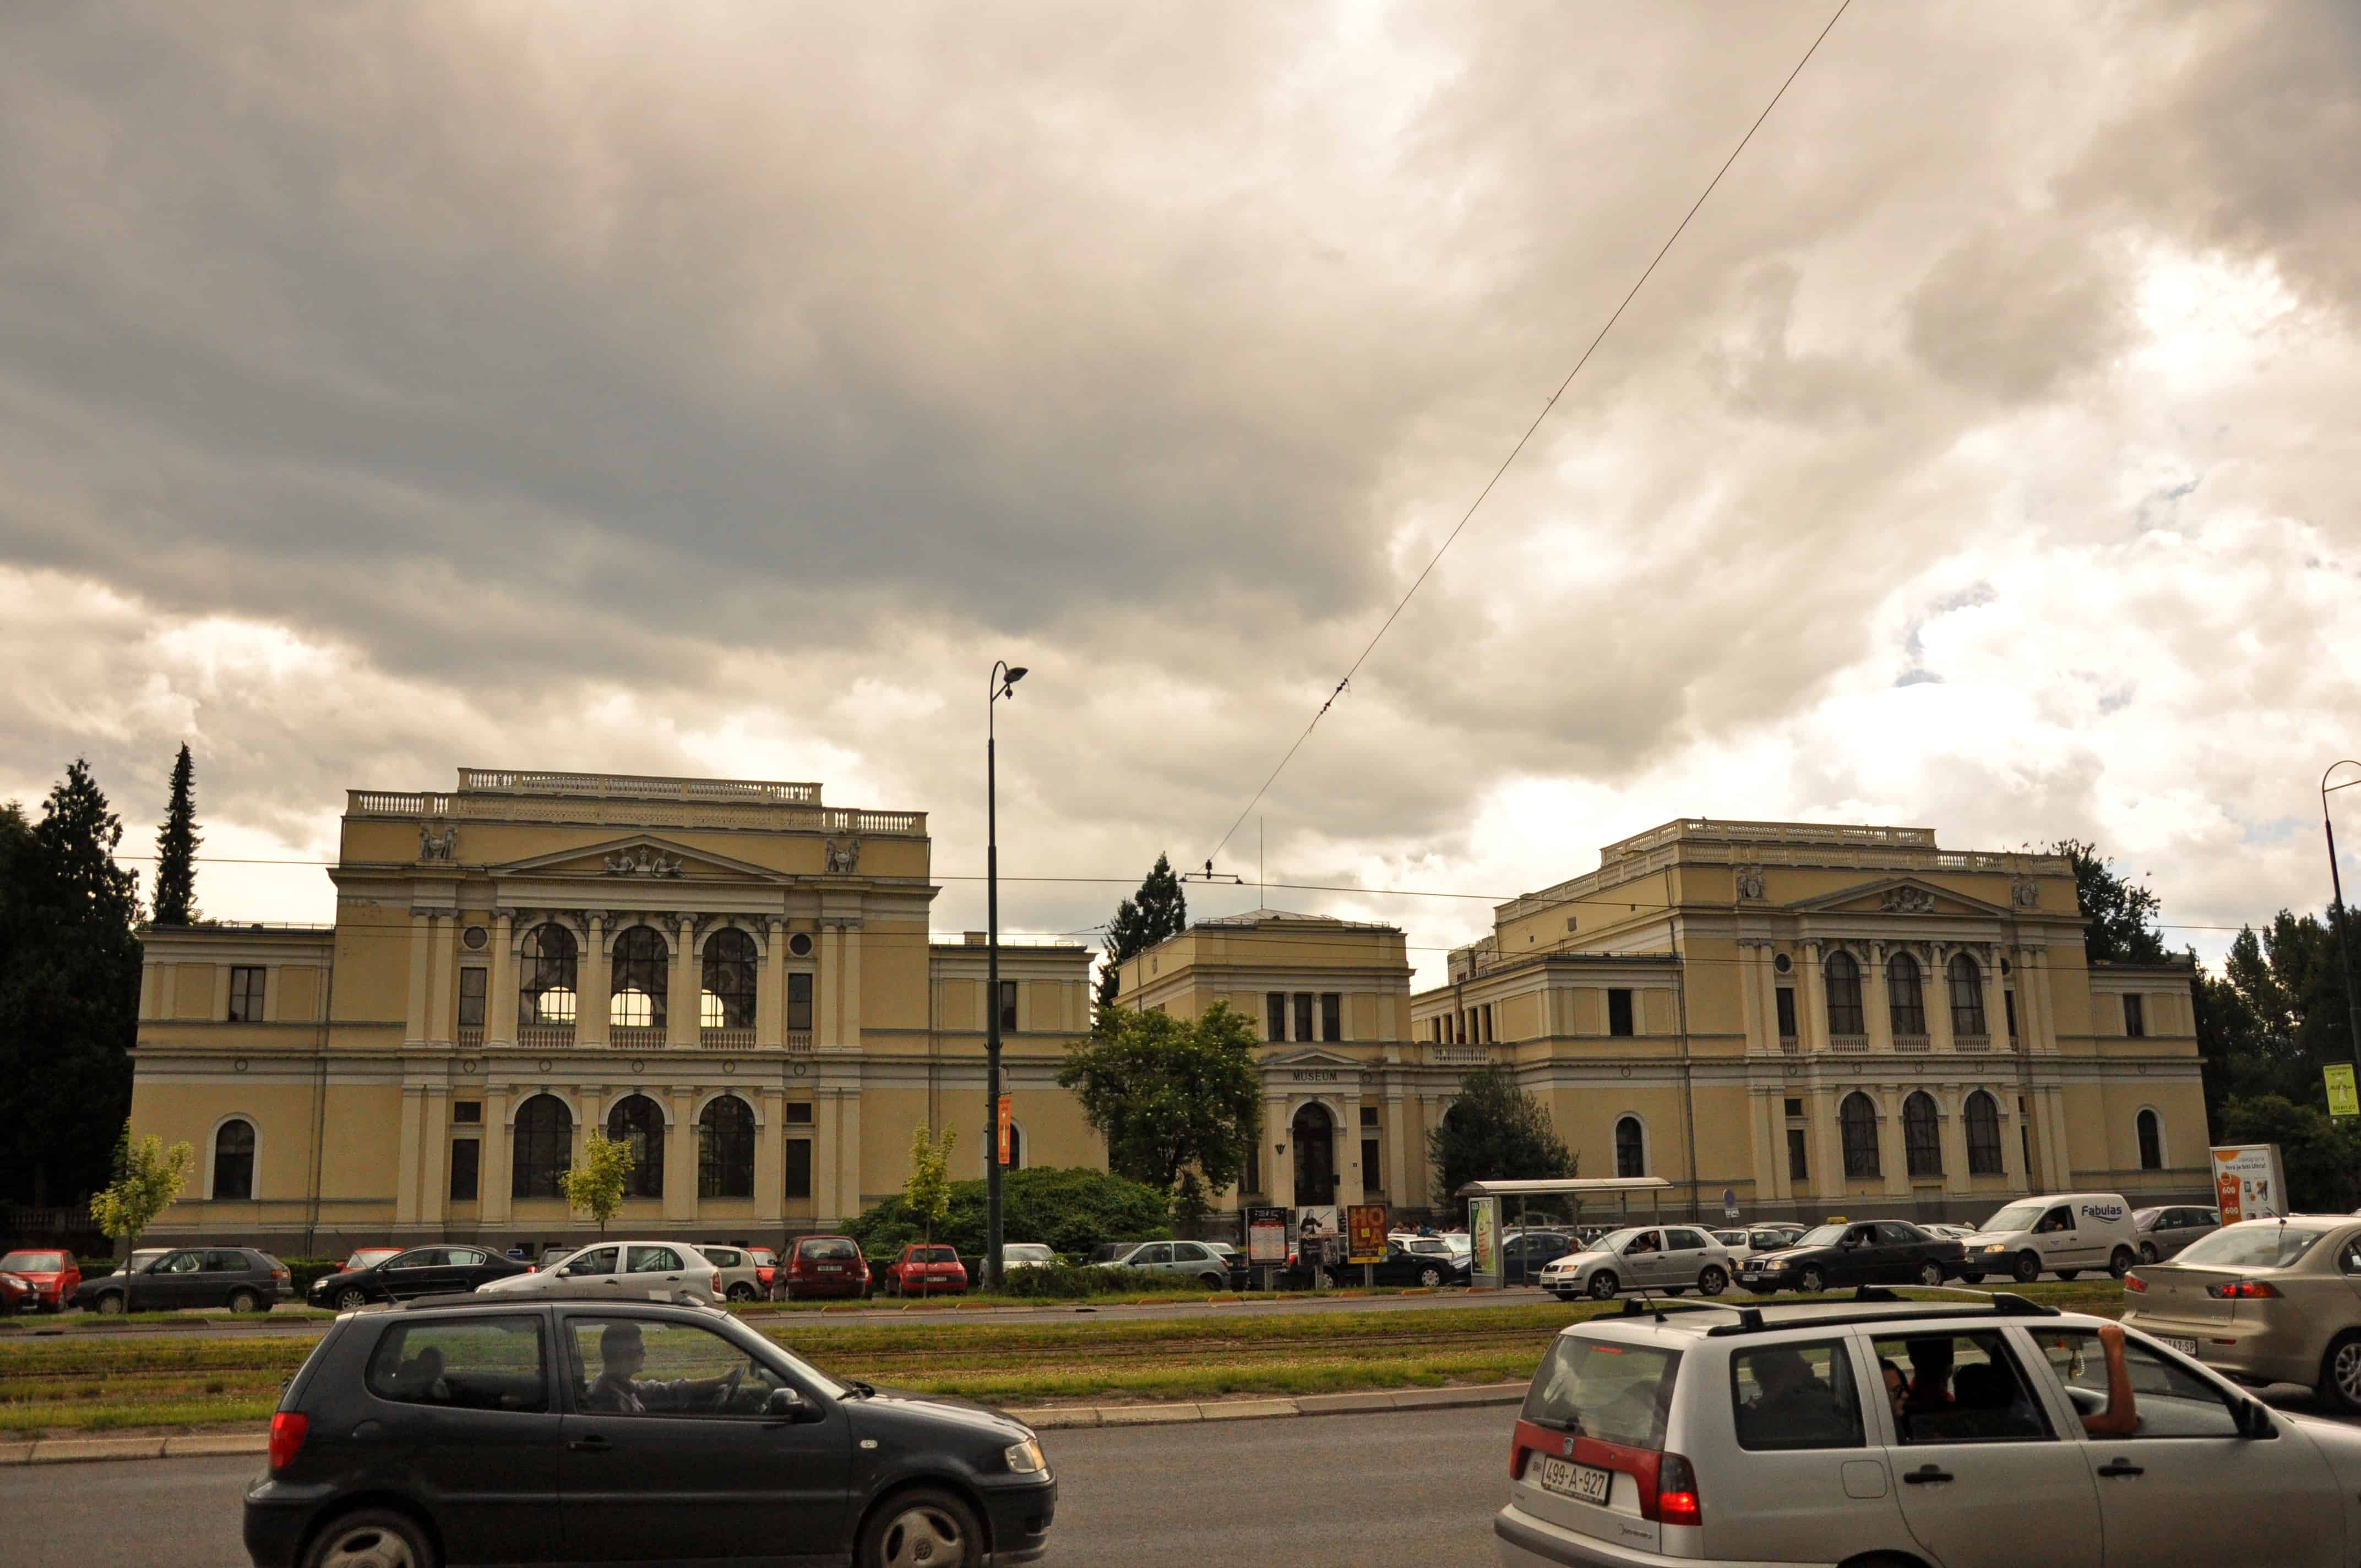 An image of the National Museum of Bosnia